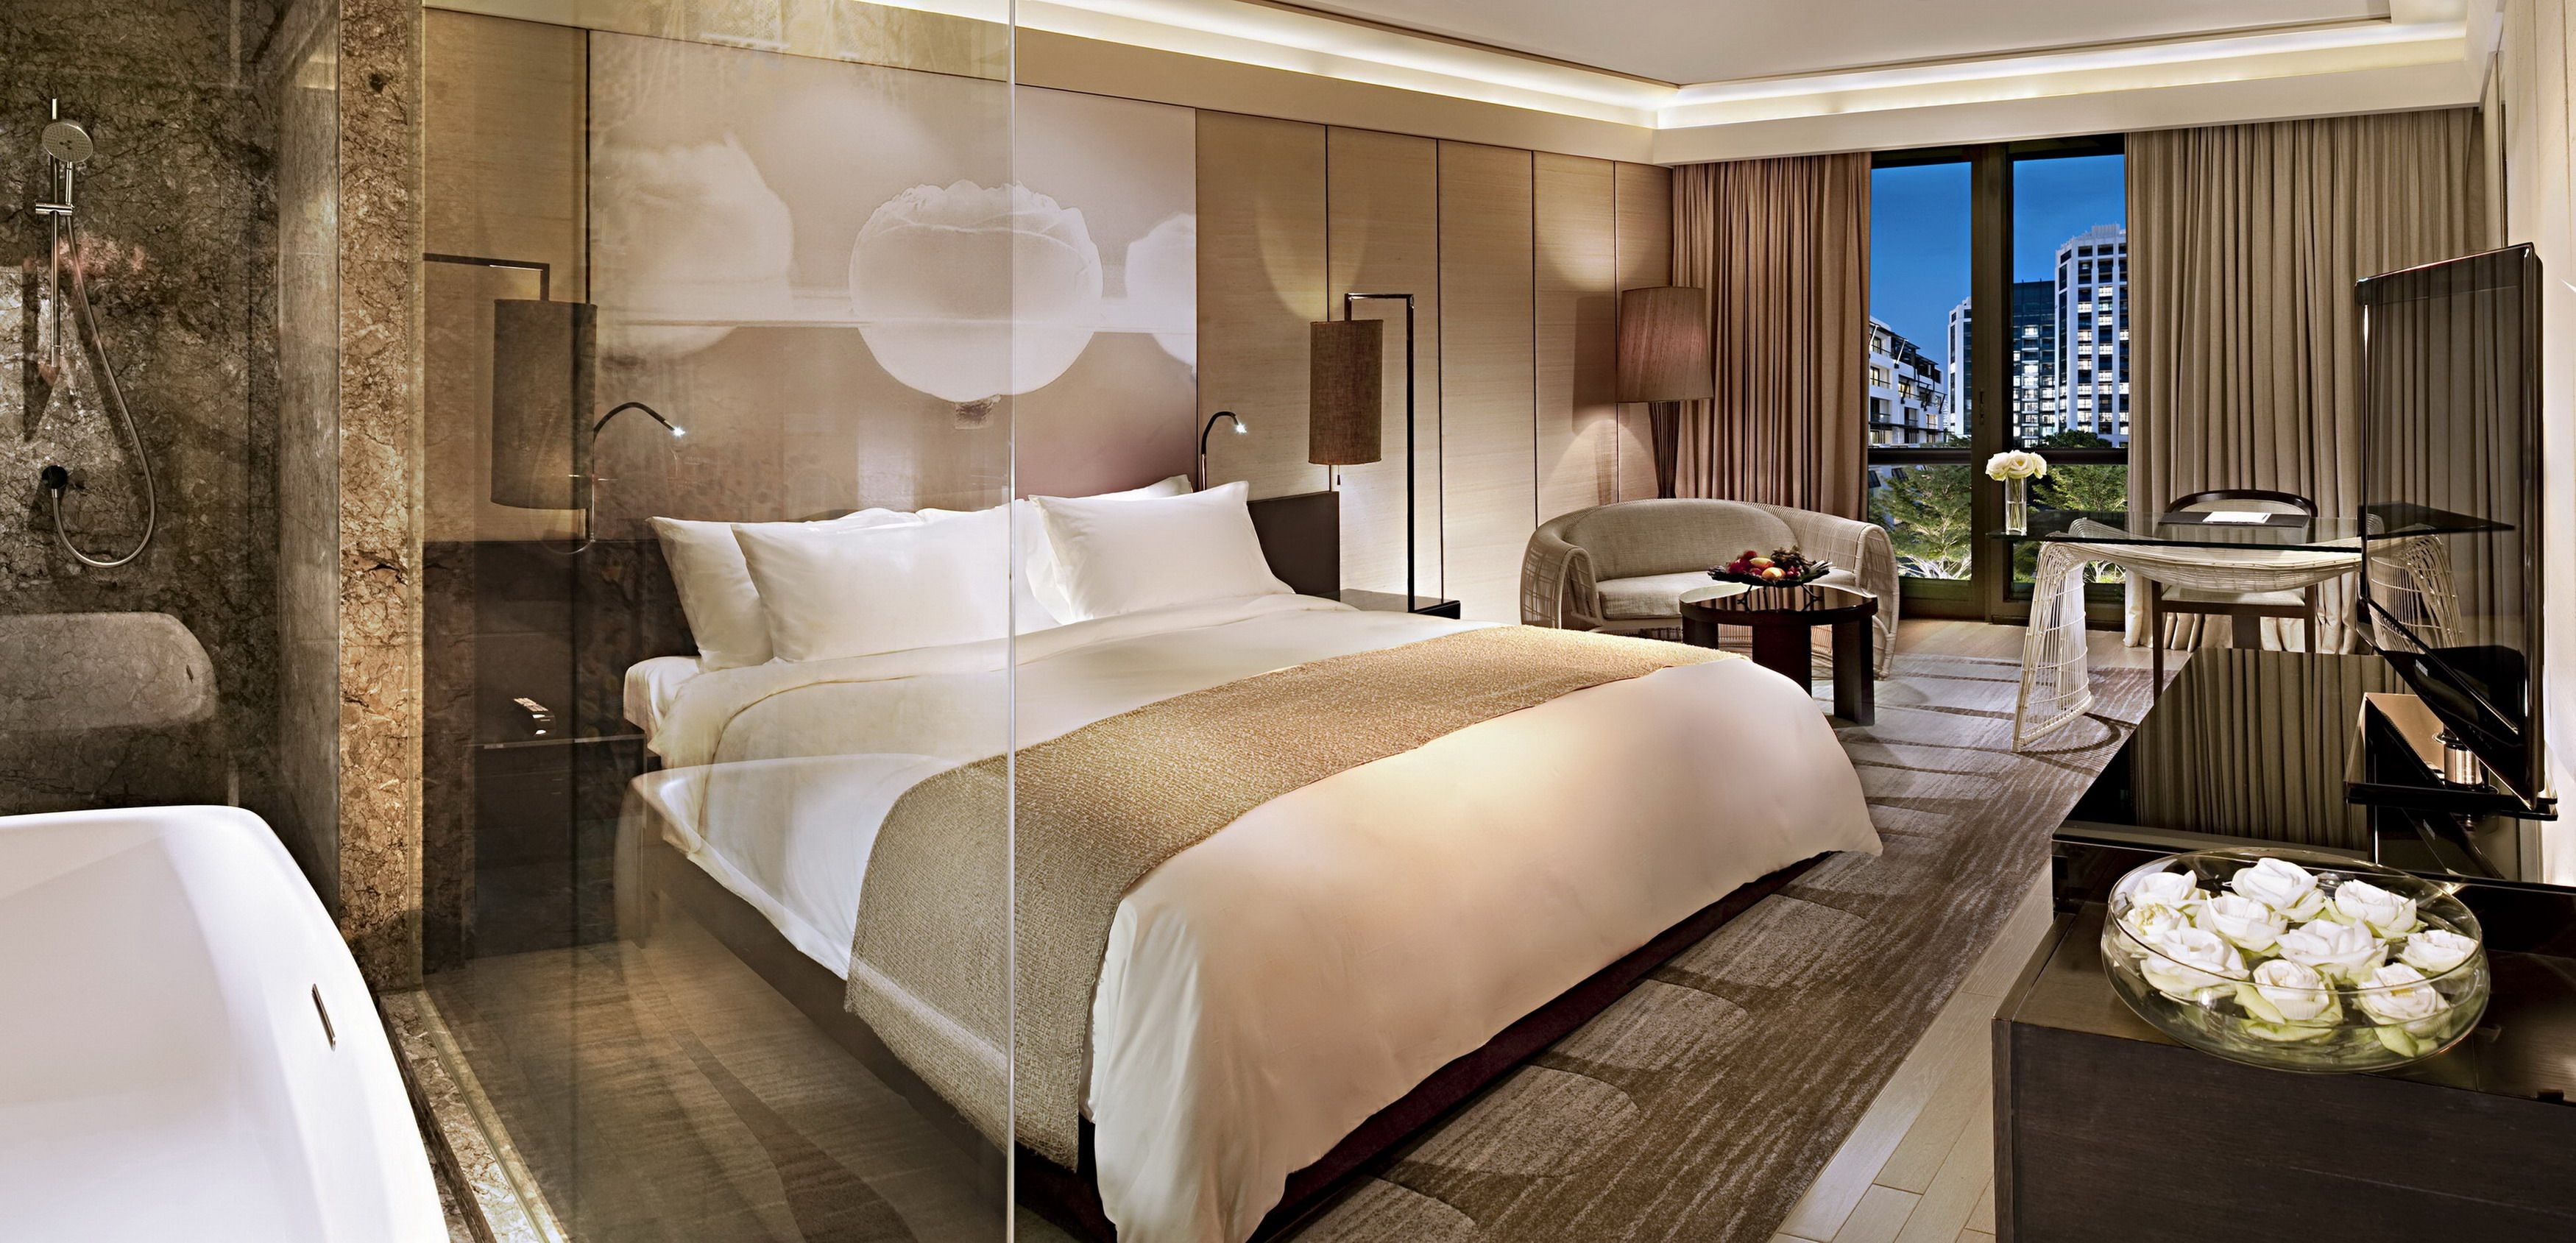 Luxury hotel rooms pictures new luxury kempinski hotel for Hotel suite design